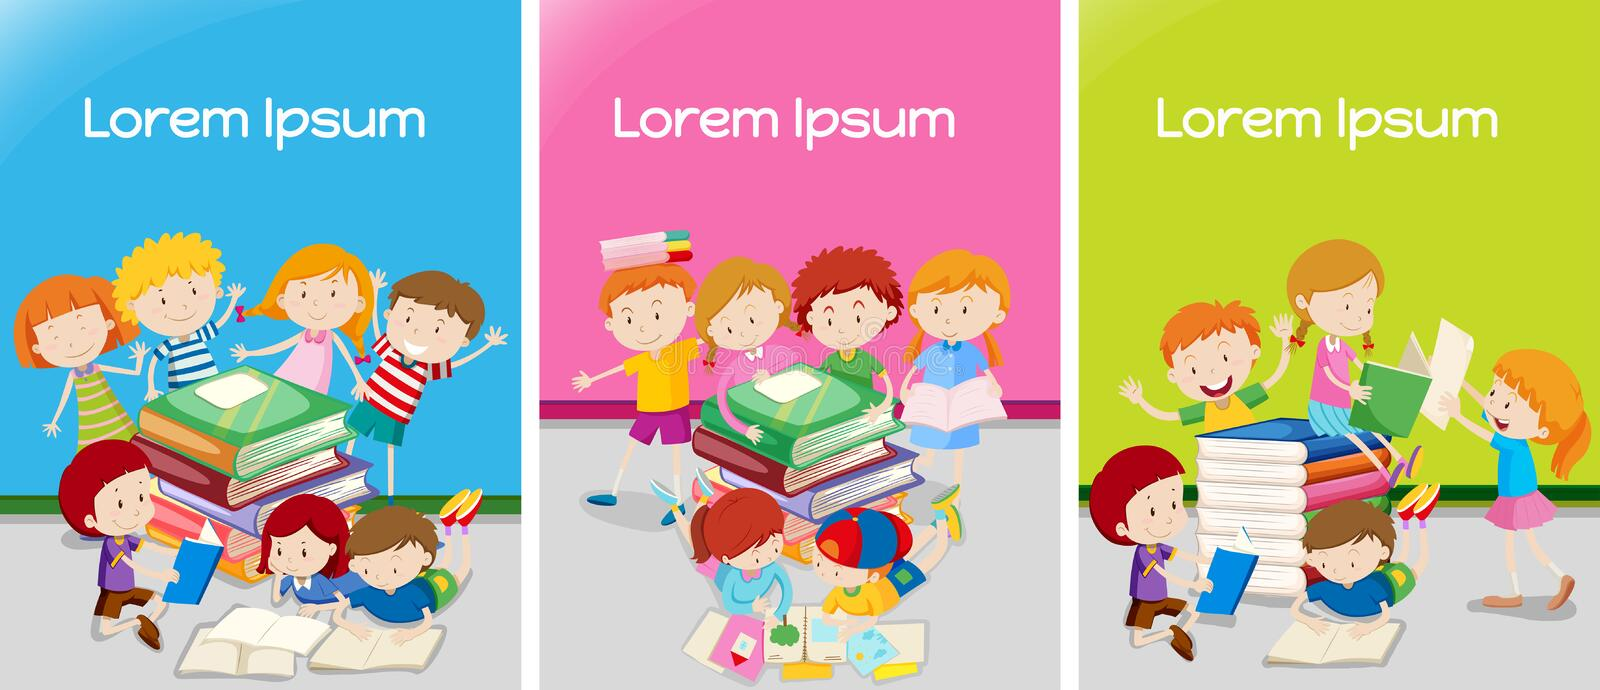 Three classrooms with students learning stock illustration